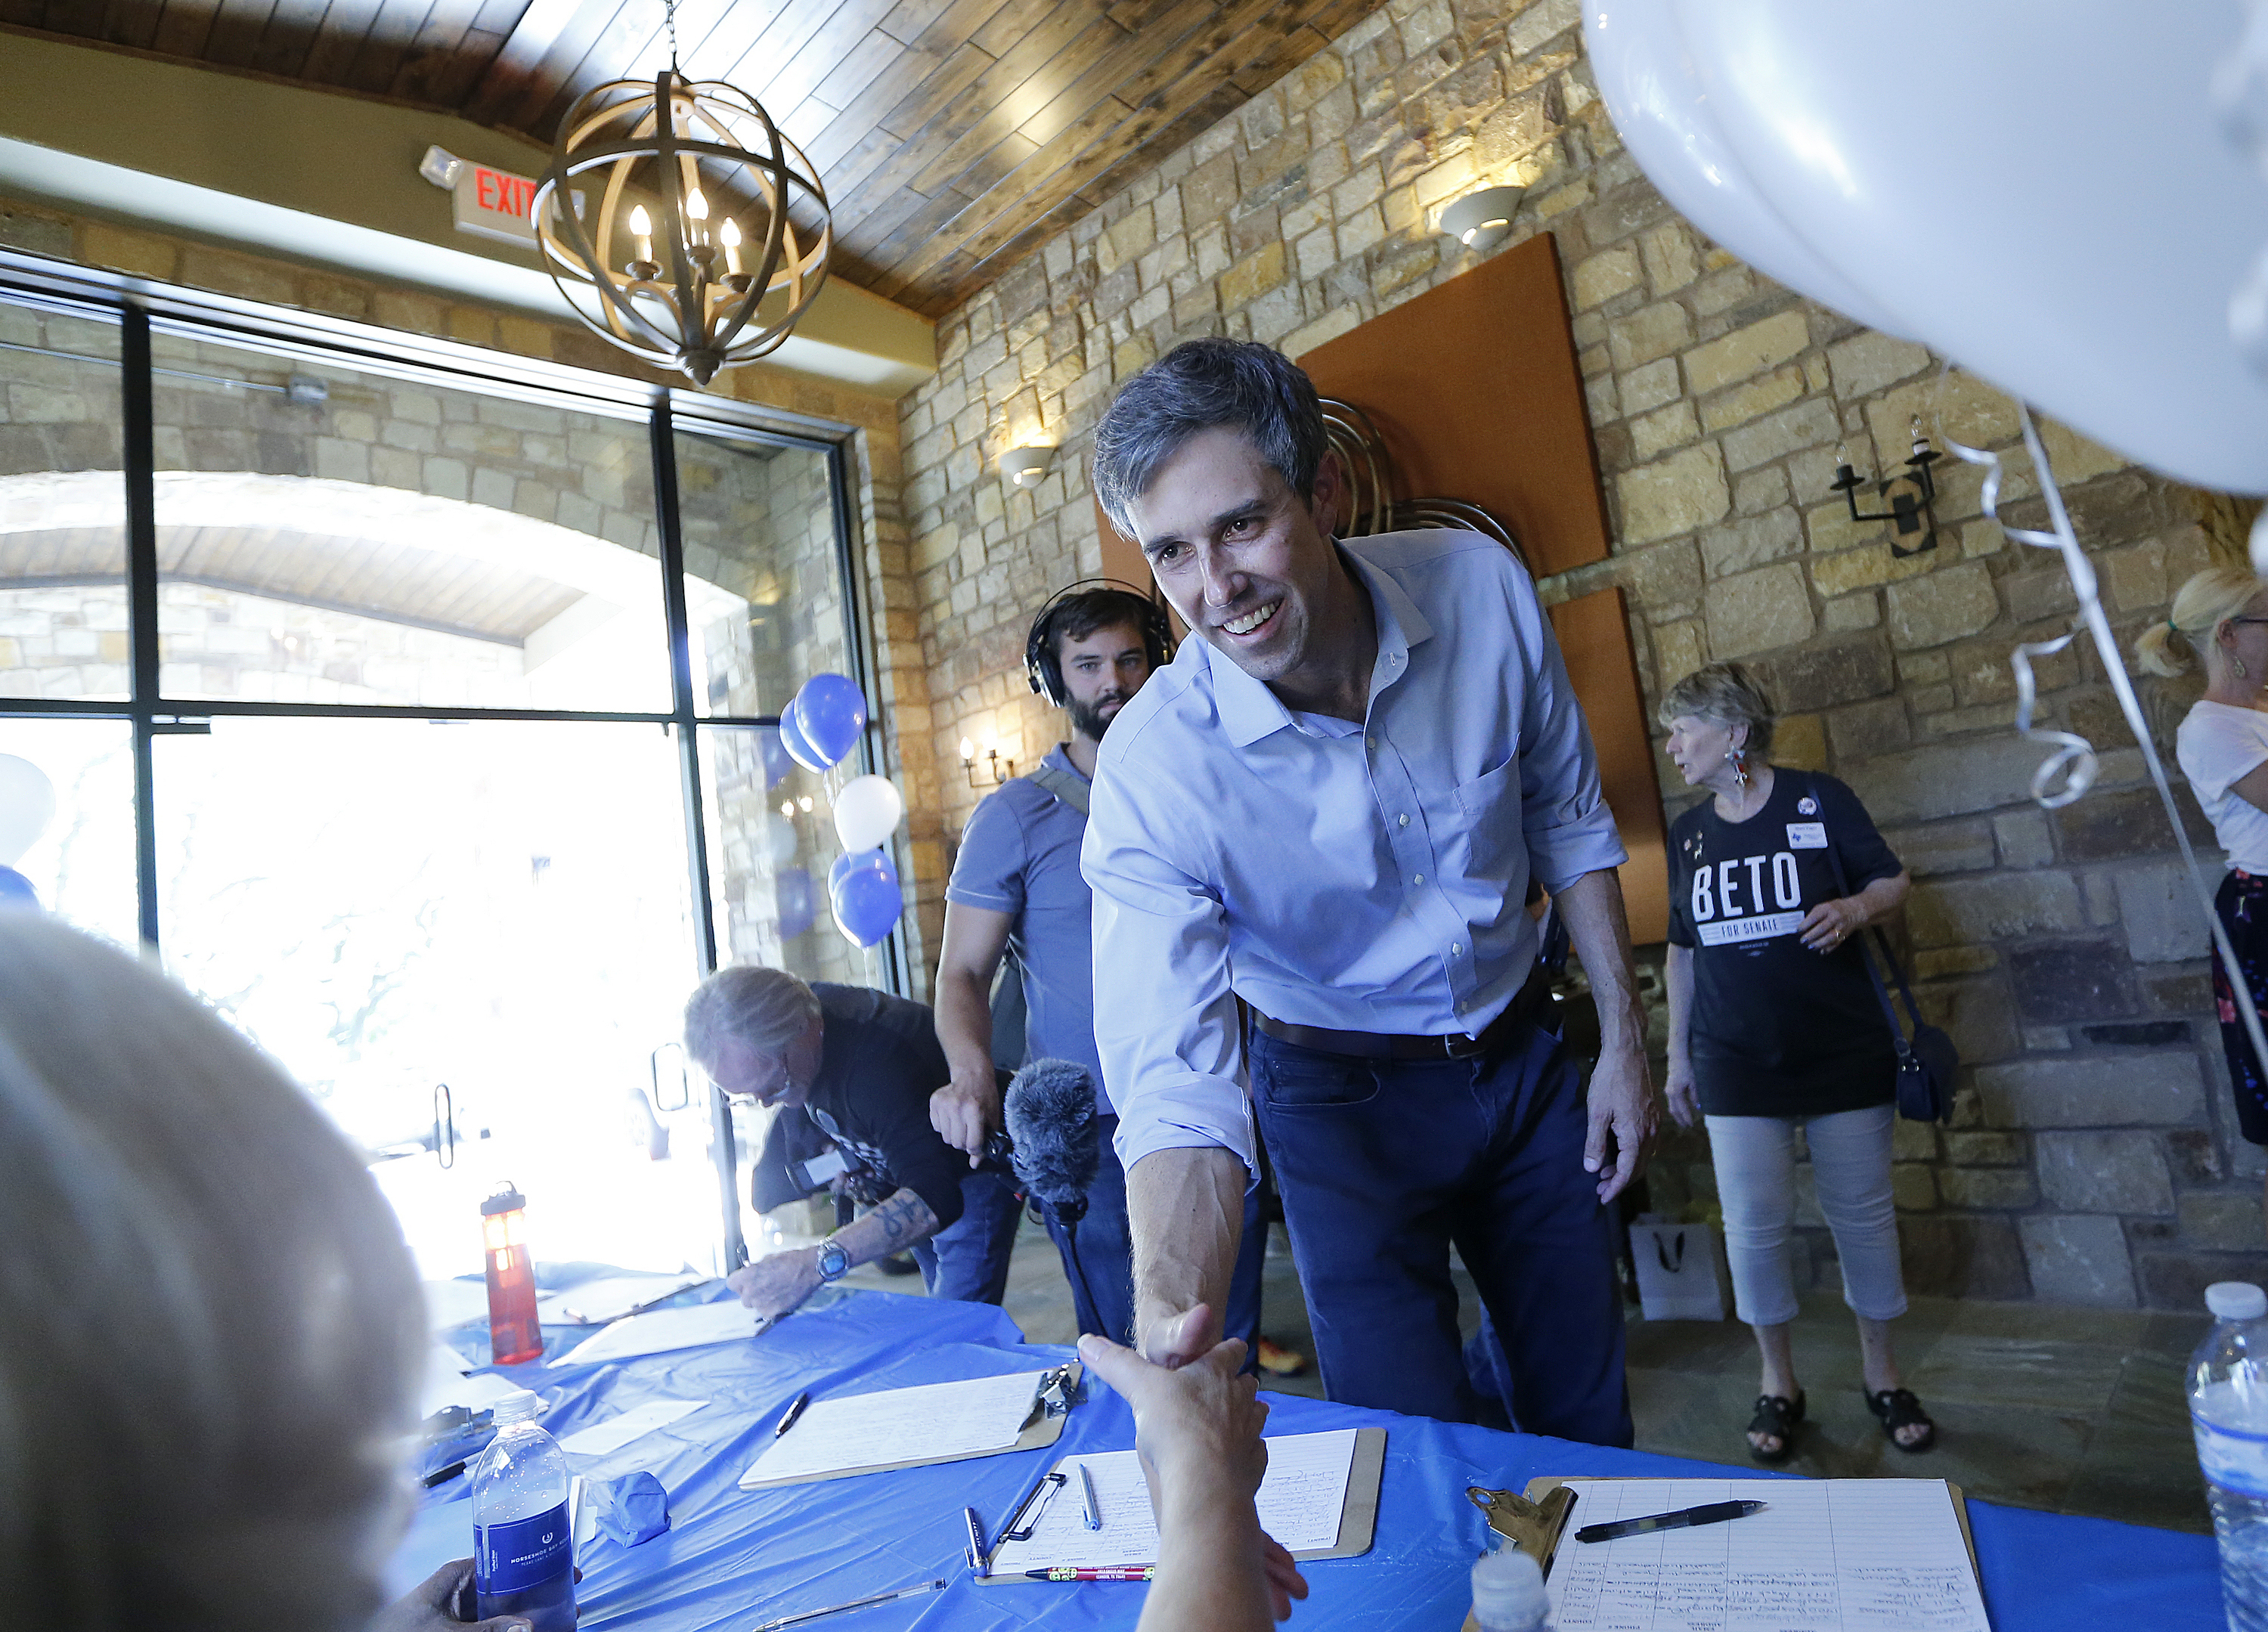 Beto O'Rourke at a campaign event in Horseshoe Bay, Texas